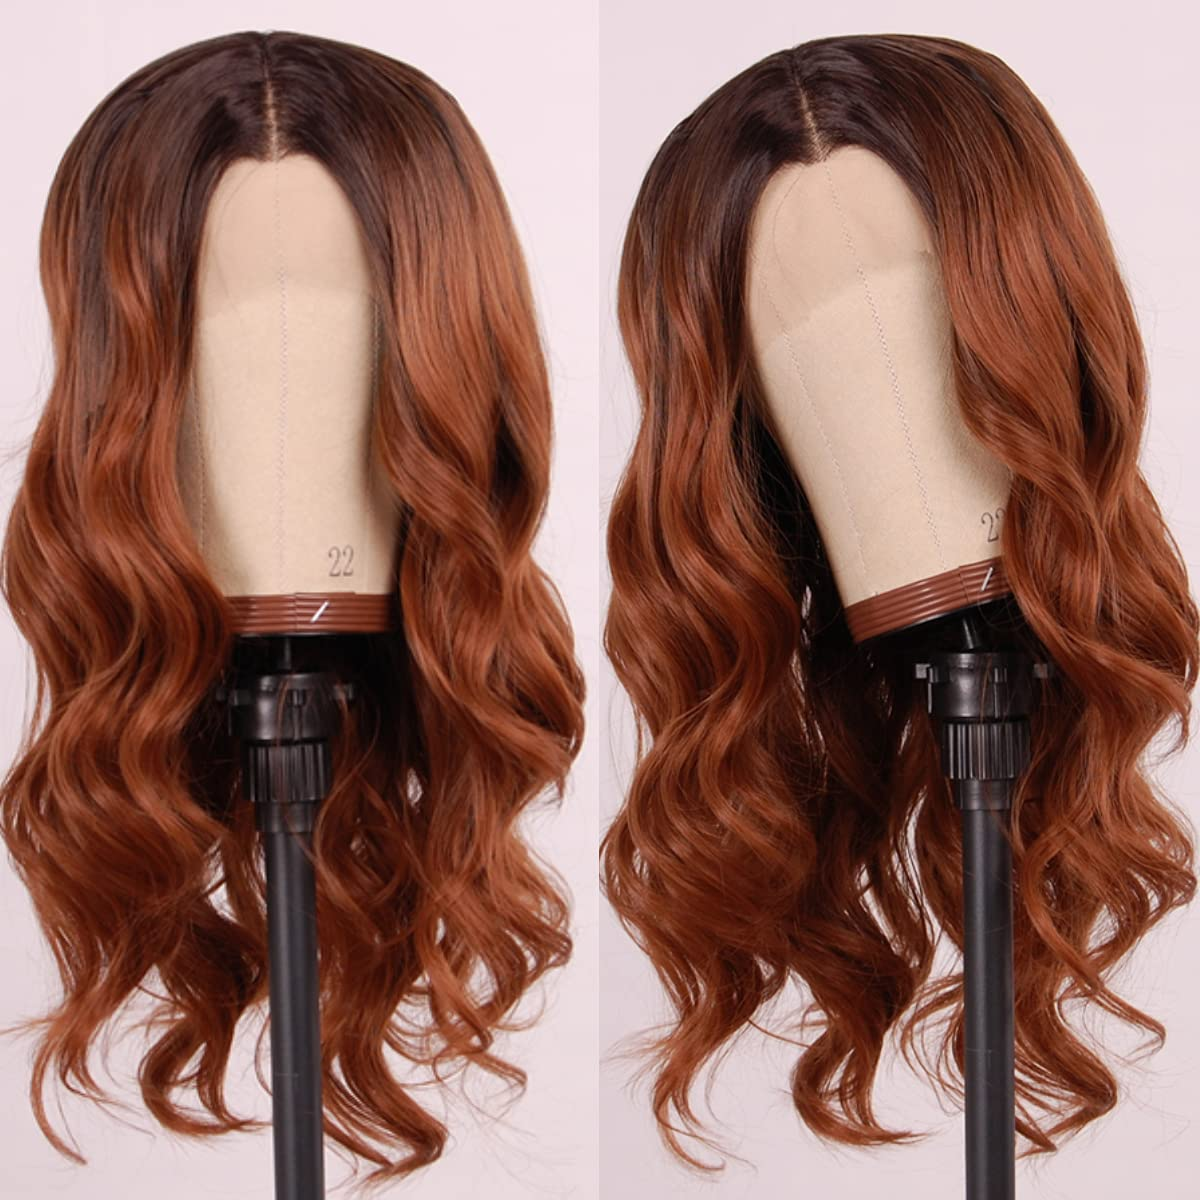 QDTOYOBO Short Brown Wavy Lace Synthetic Max 83% OFF Copper Wigs Front New product